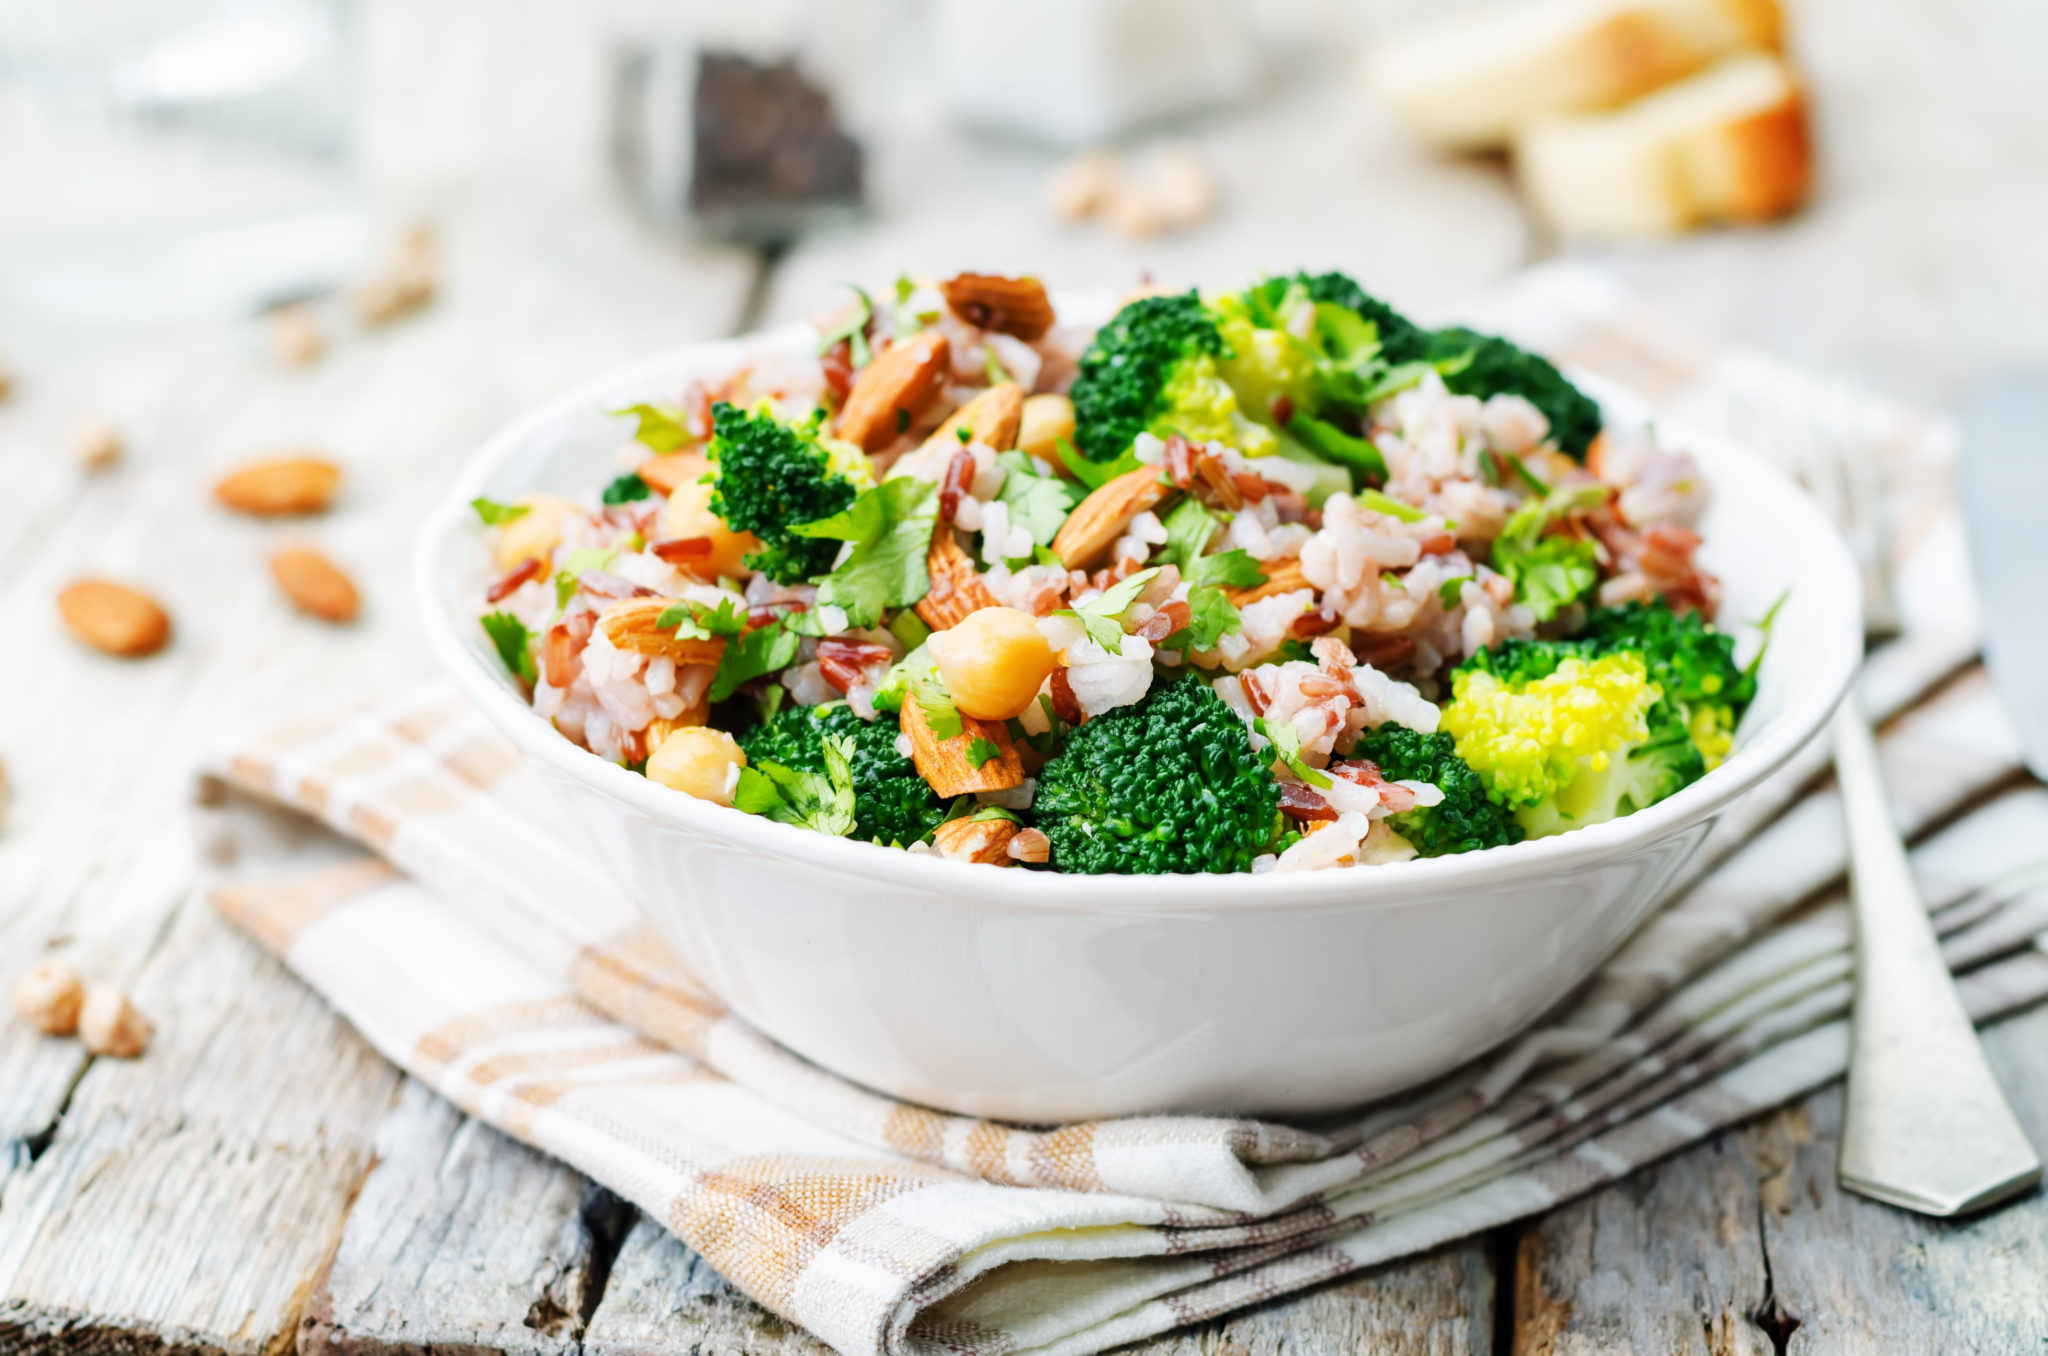 A simple broccoli salad can be the perfect lunch.